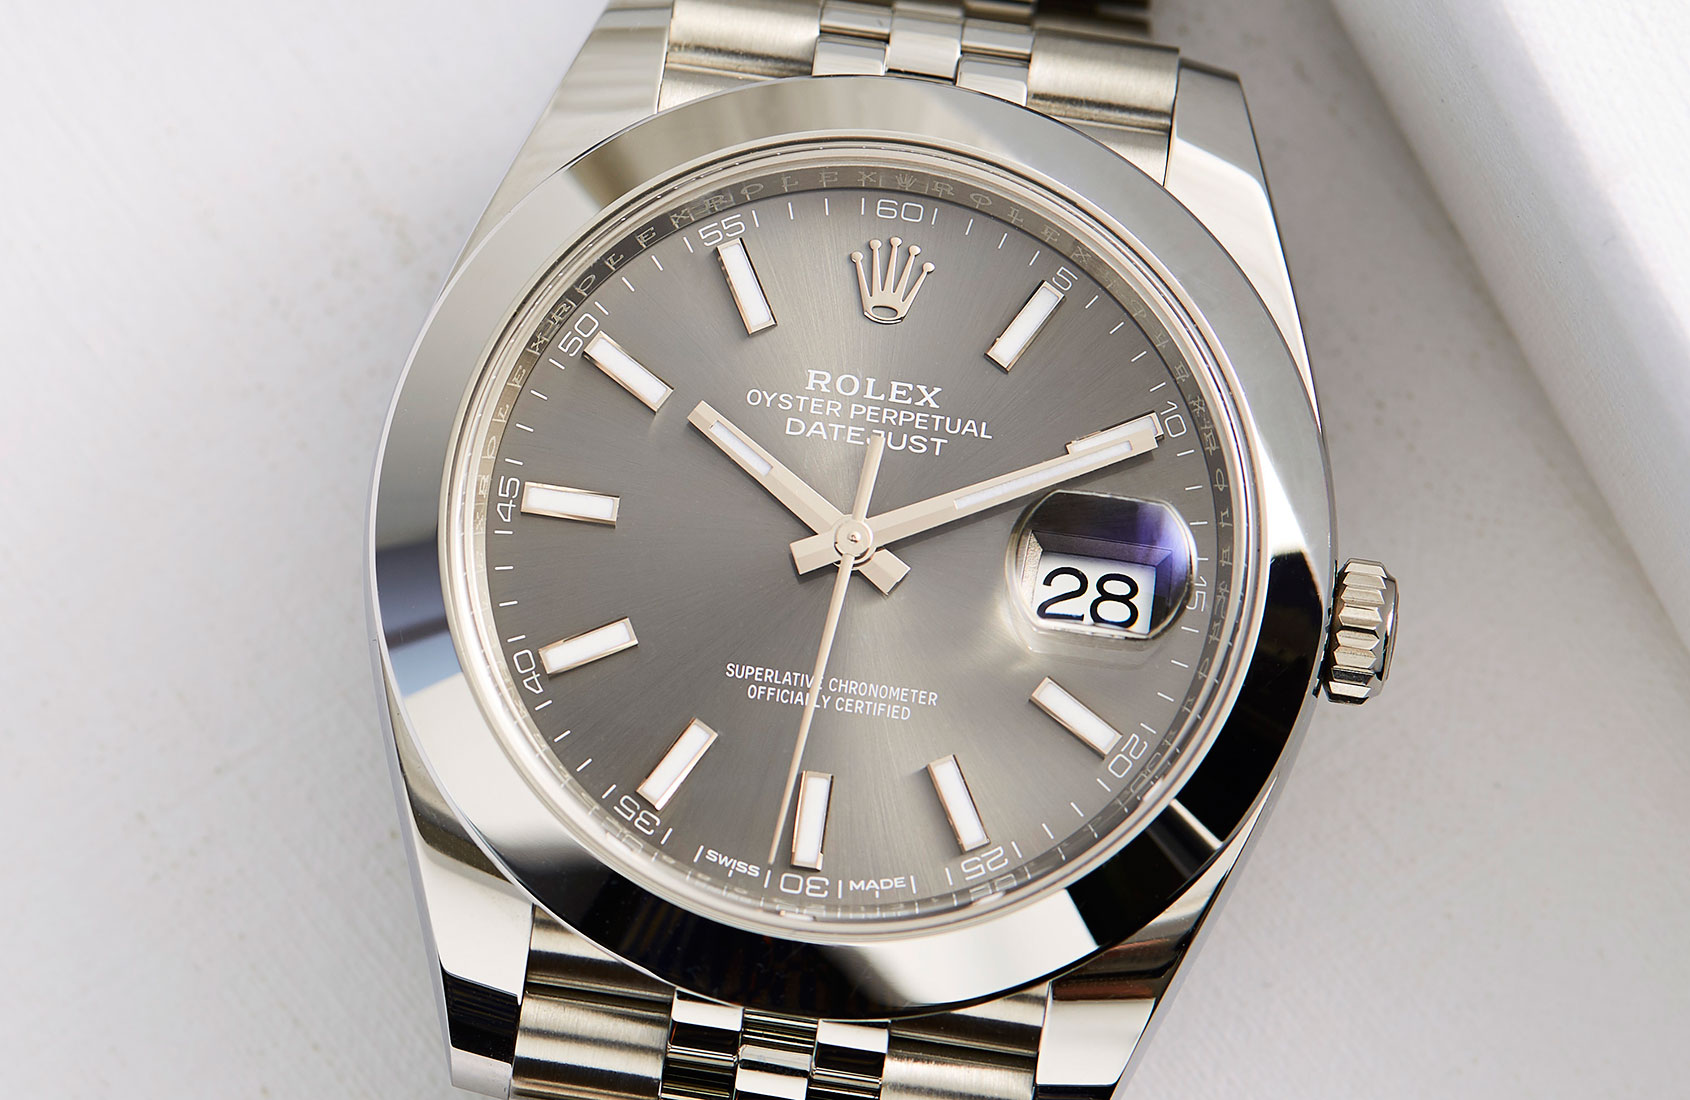 Rolex Oyster Perpetual Datejust 41 In Steel Hands On Review